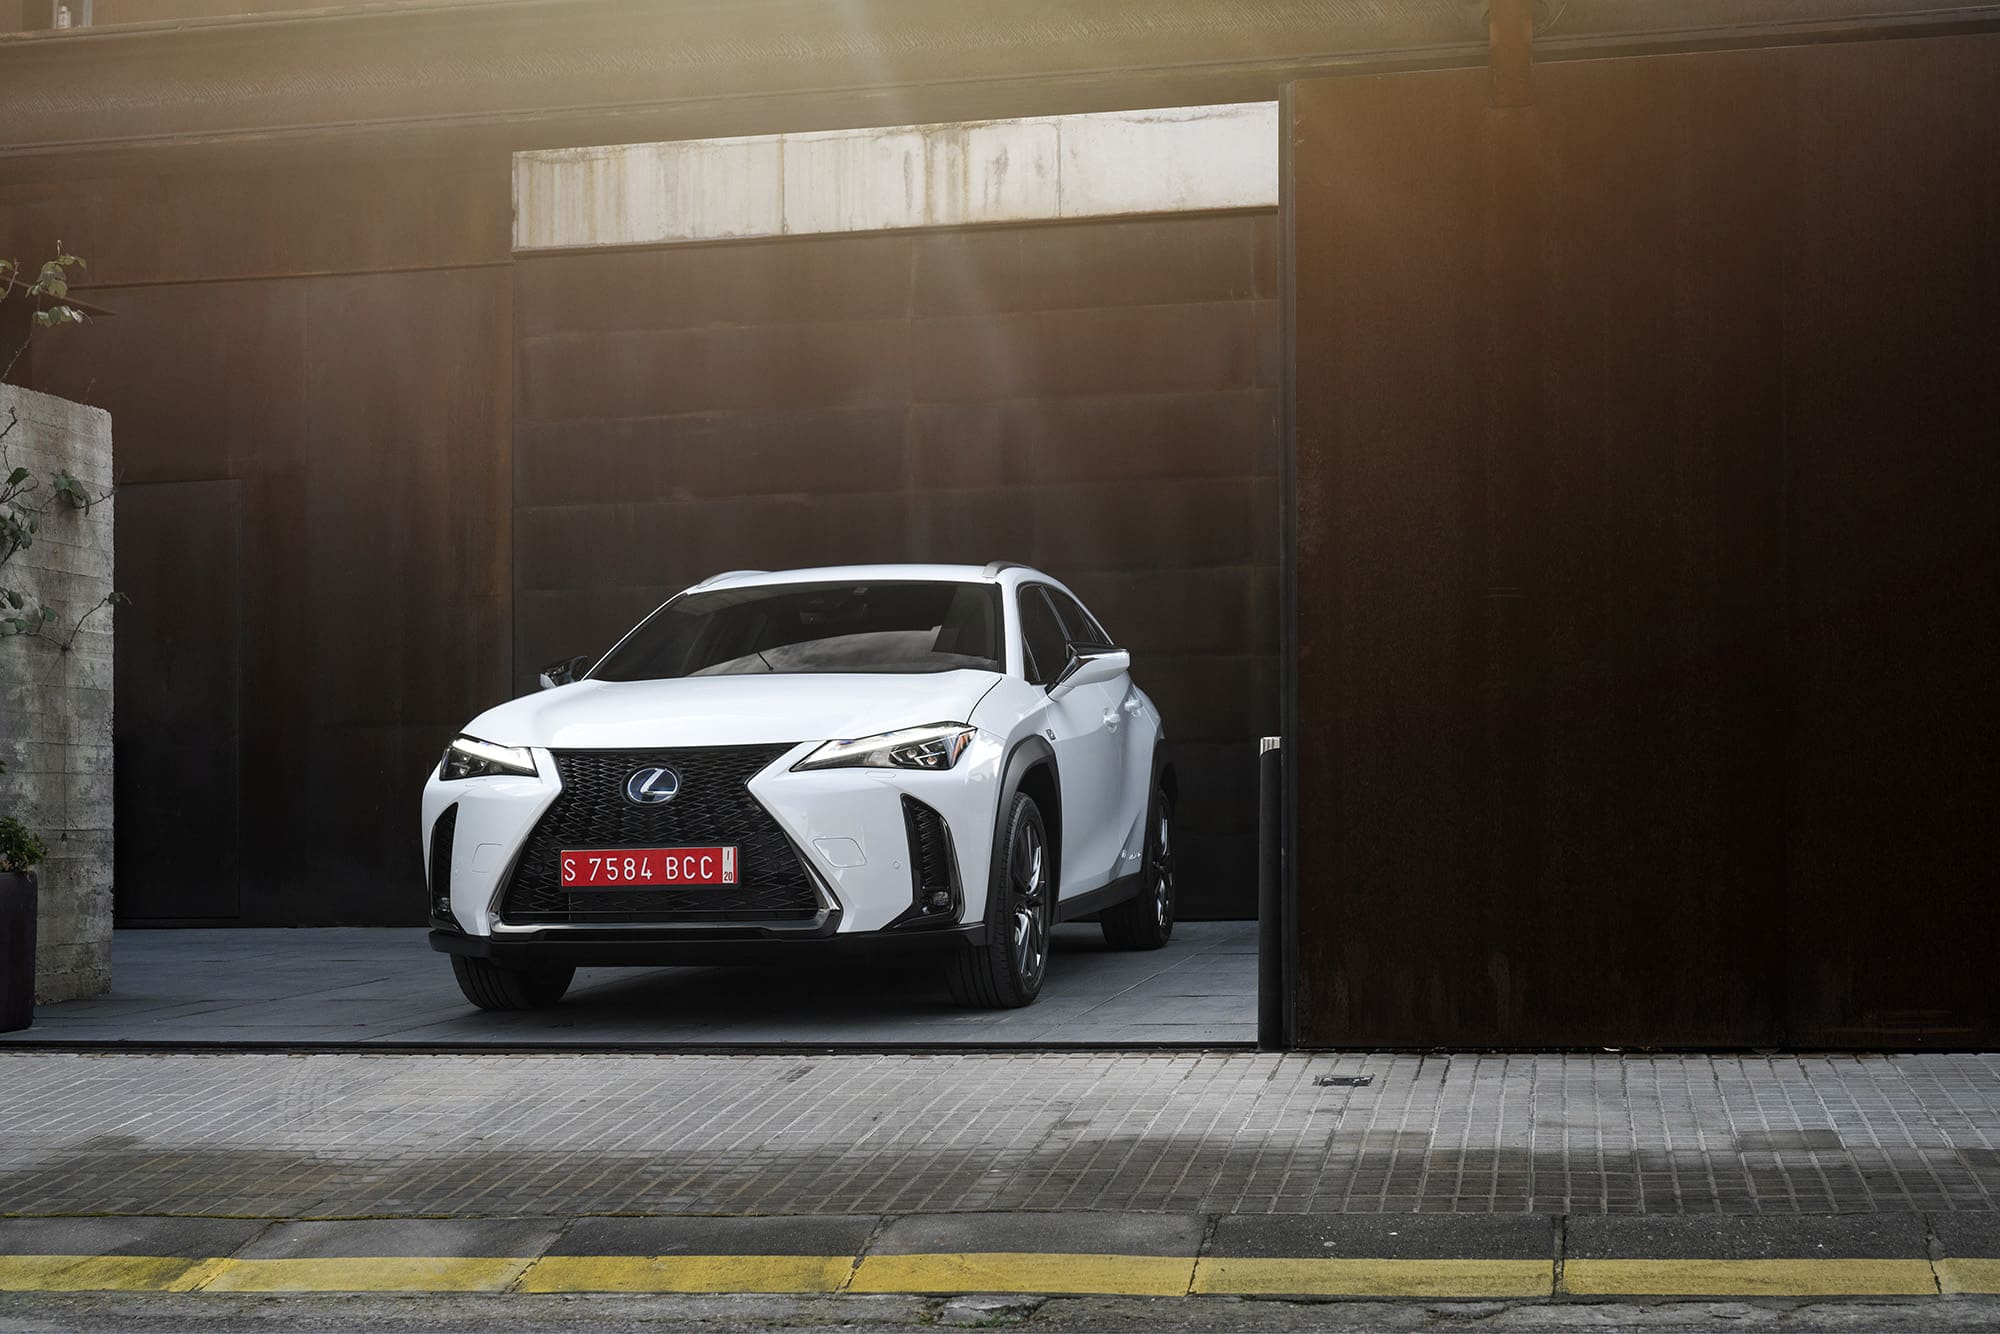 The design of the UV 250h stands out from the crowd but still follows other models in the Lexus family. It's easy to recognize it if you areused to the brand.